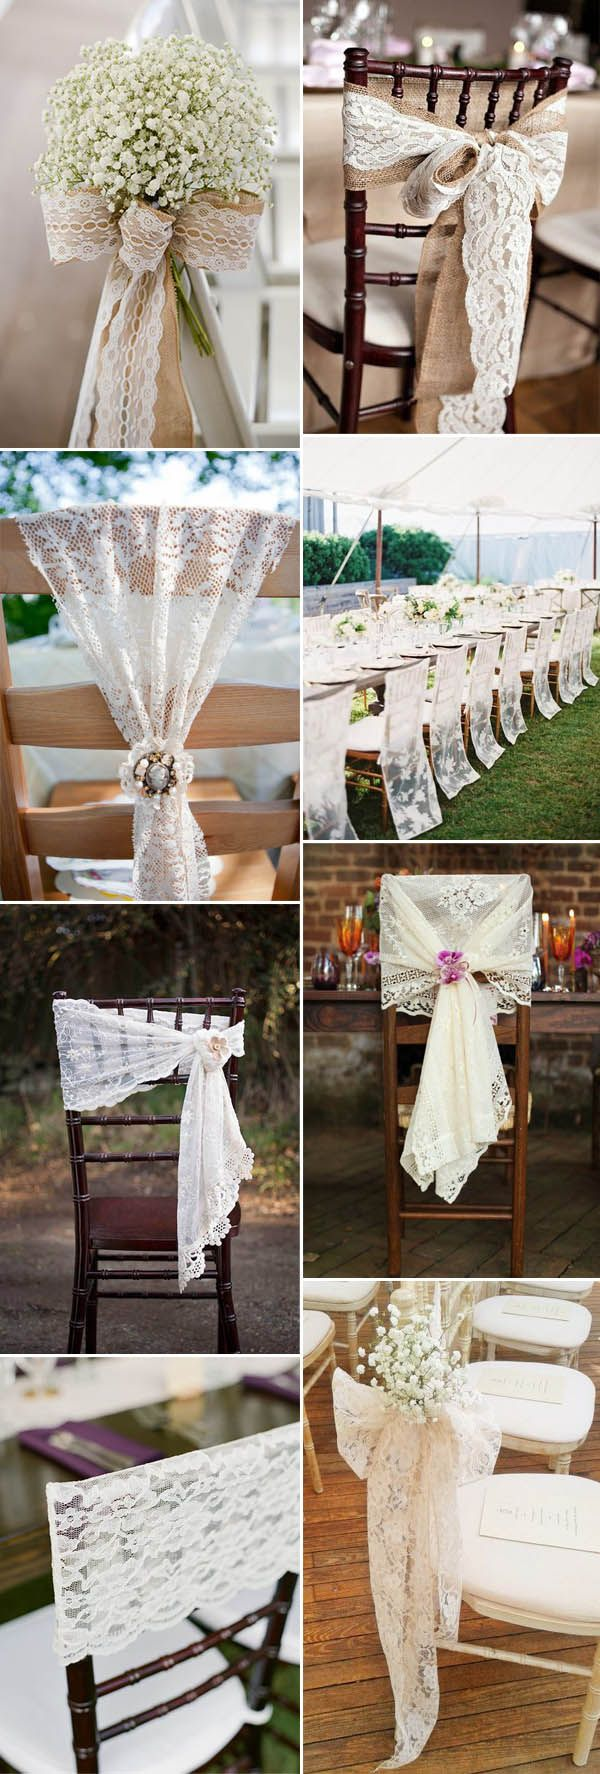 vintage wedding chair decor ideas with lace - I like the bottom left the best!